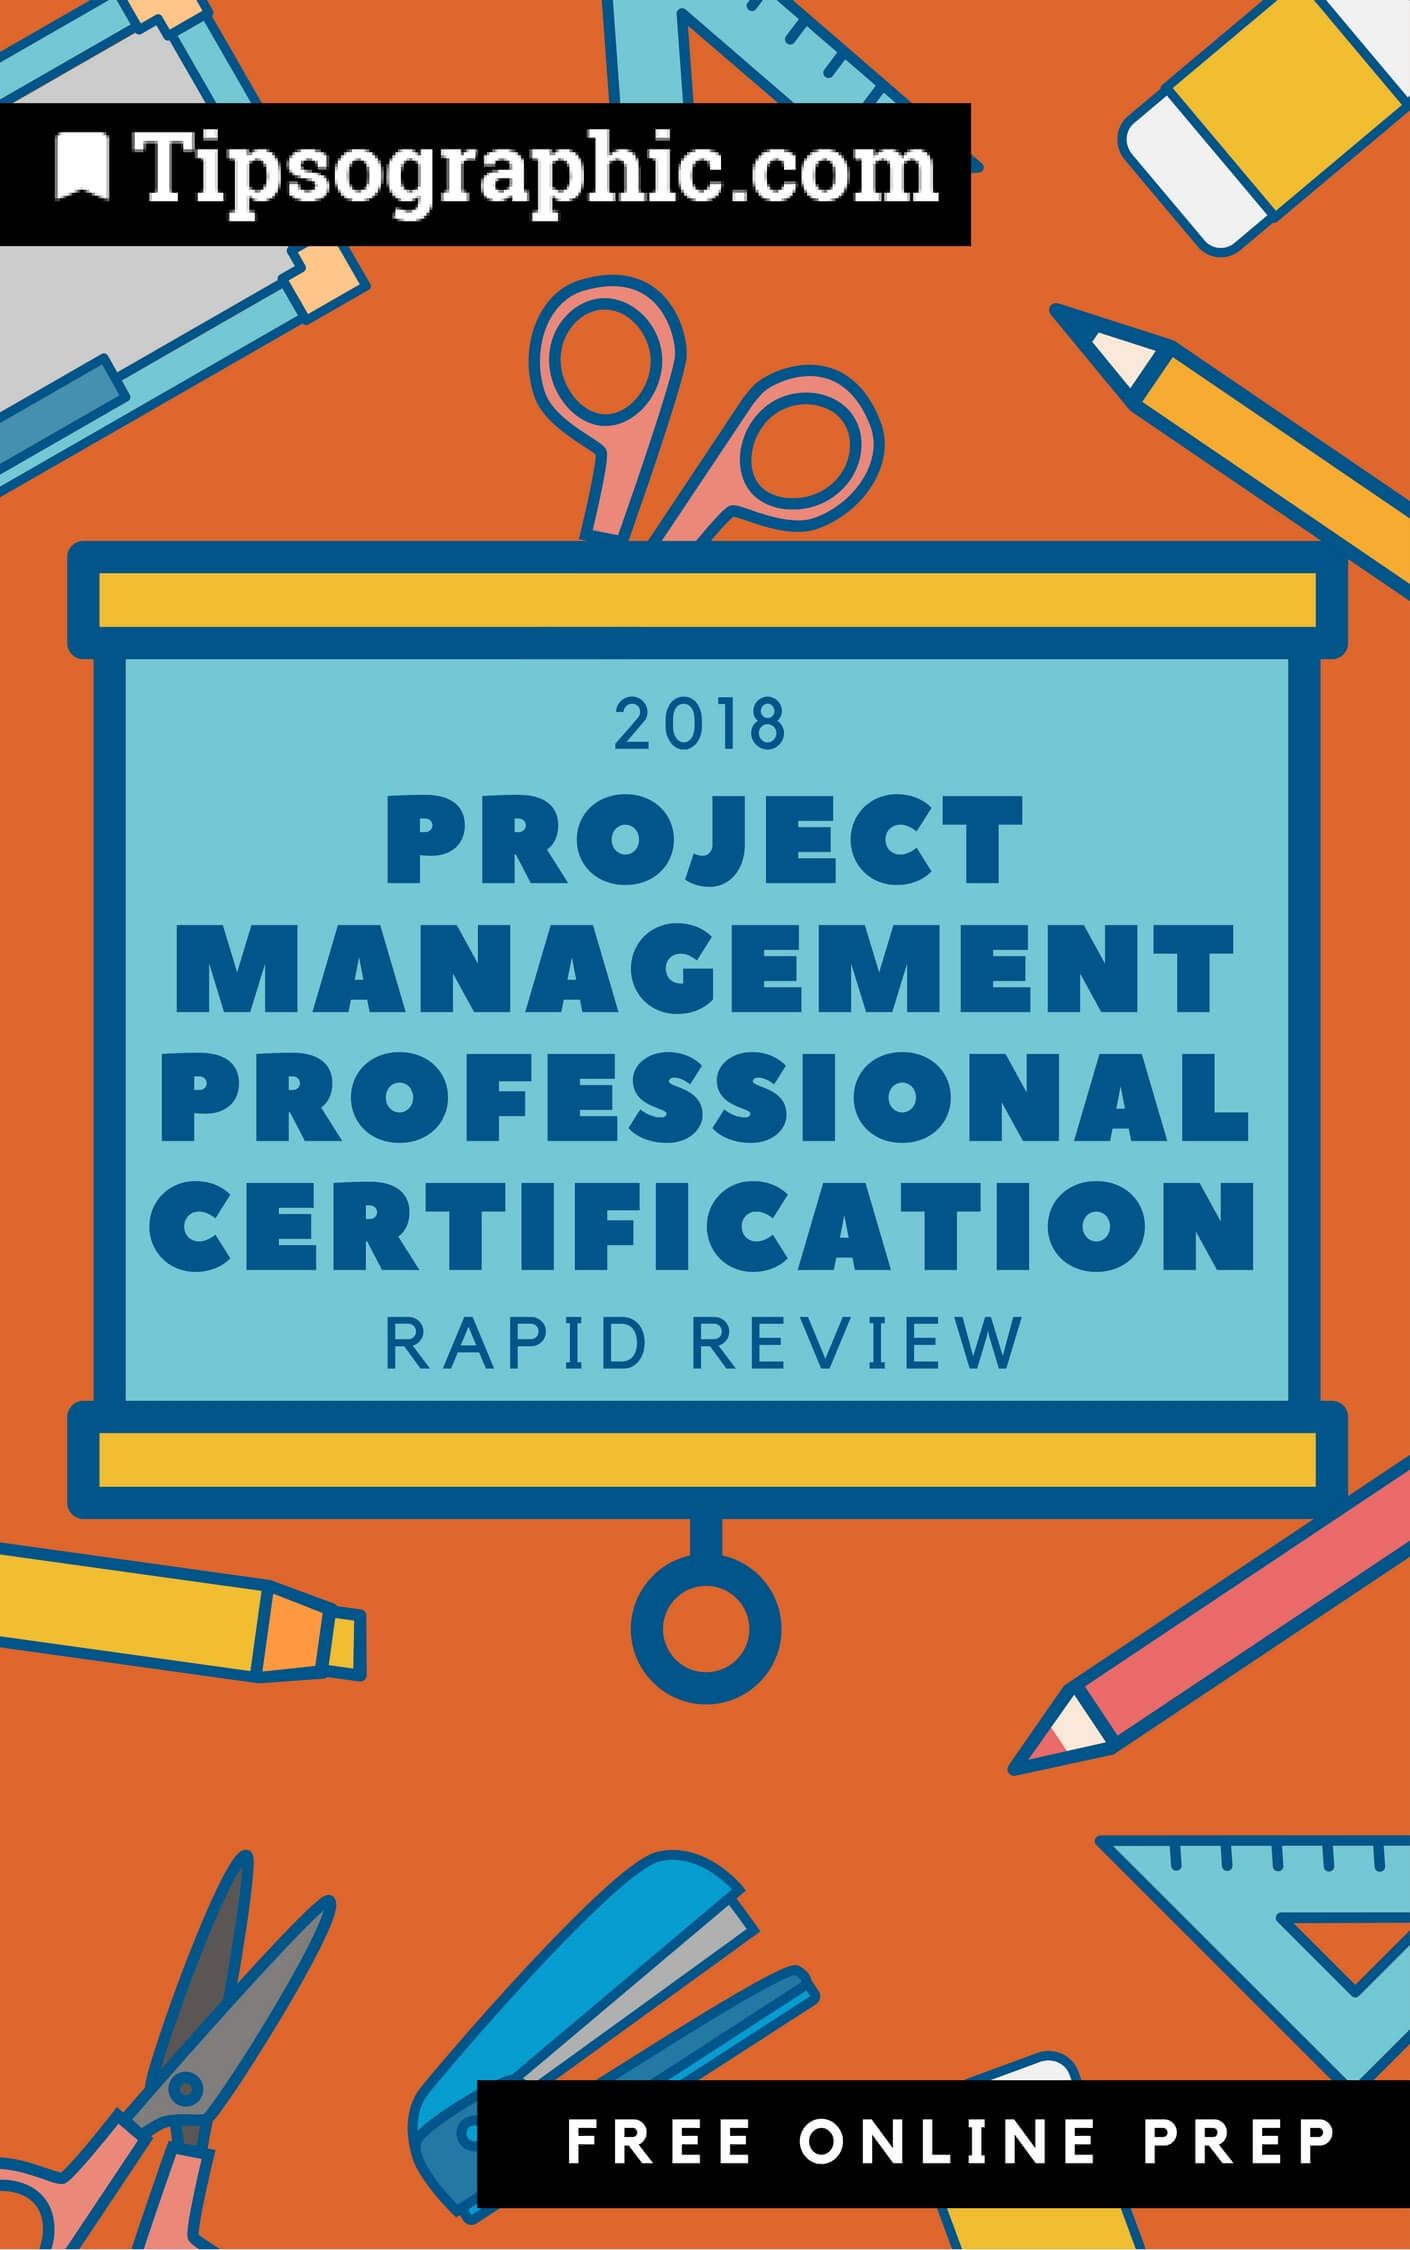 project management professional certification 2018 rapid review free online prep tipsographic